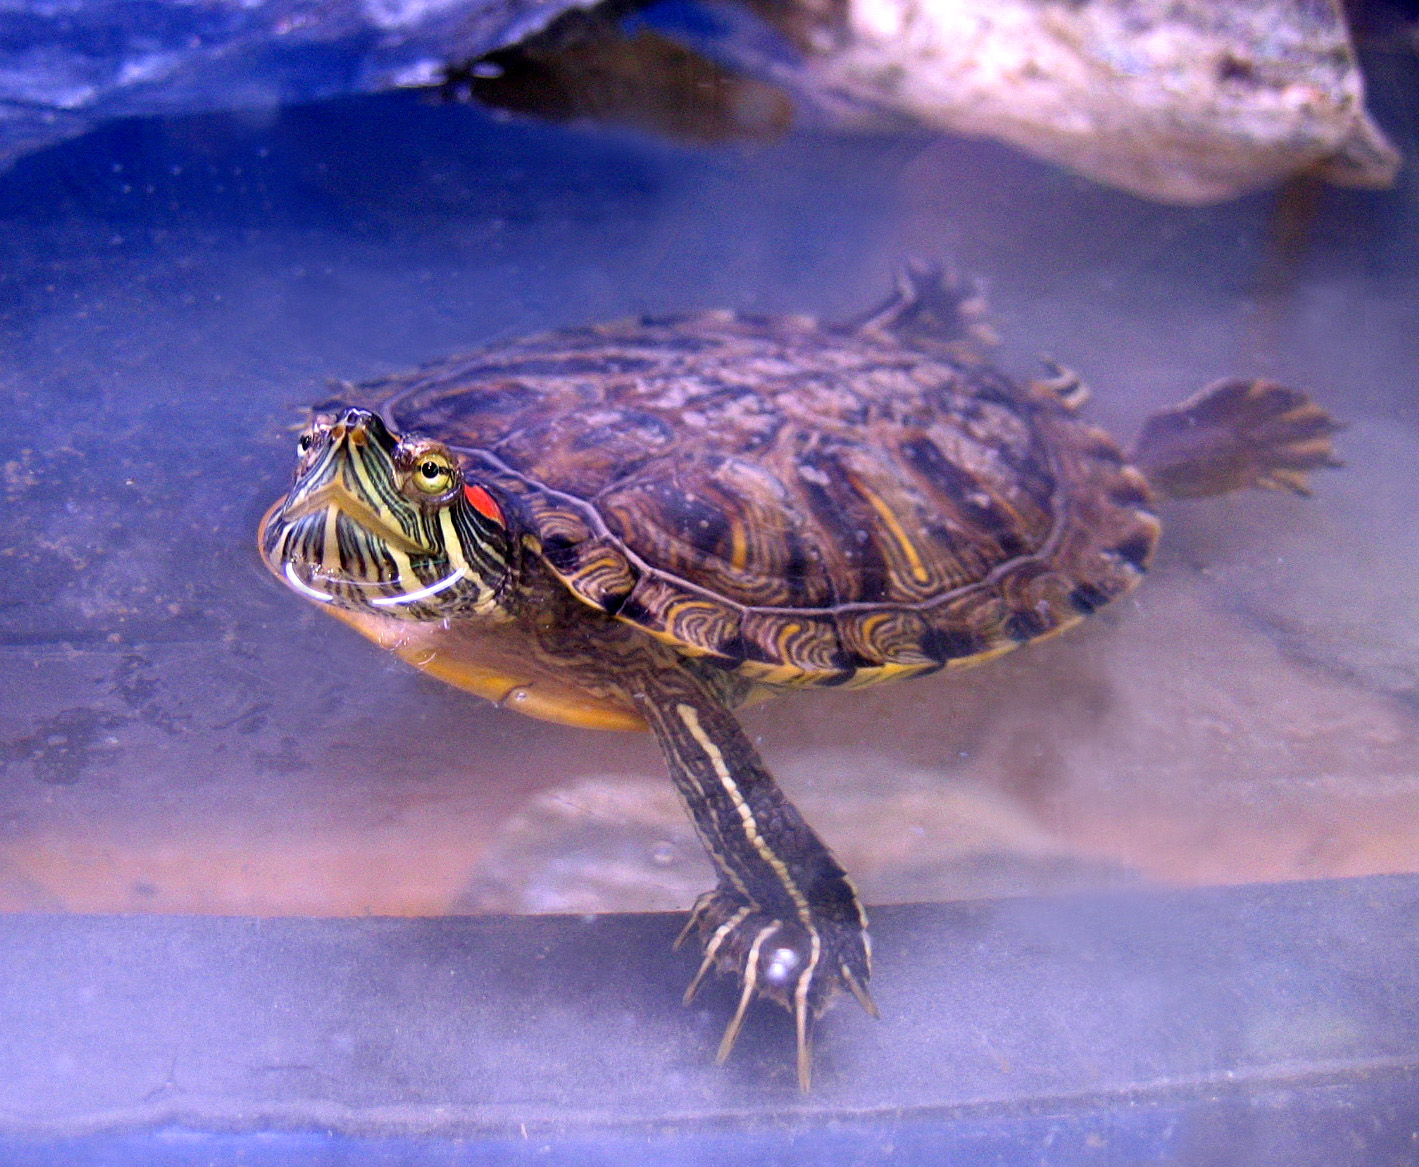 https://upload.wikimedia.org/wikipedia/commons/e/e8/Turle124.jpg